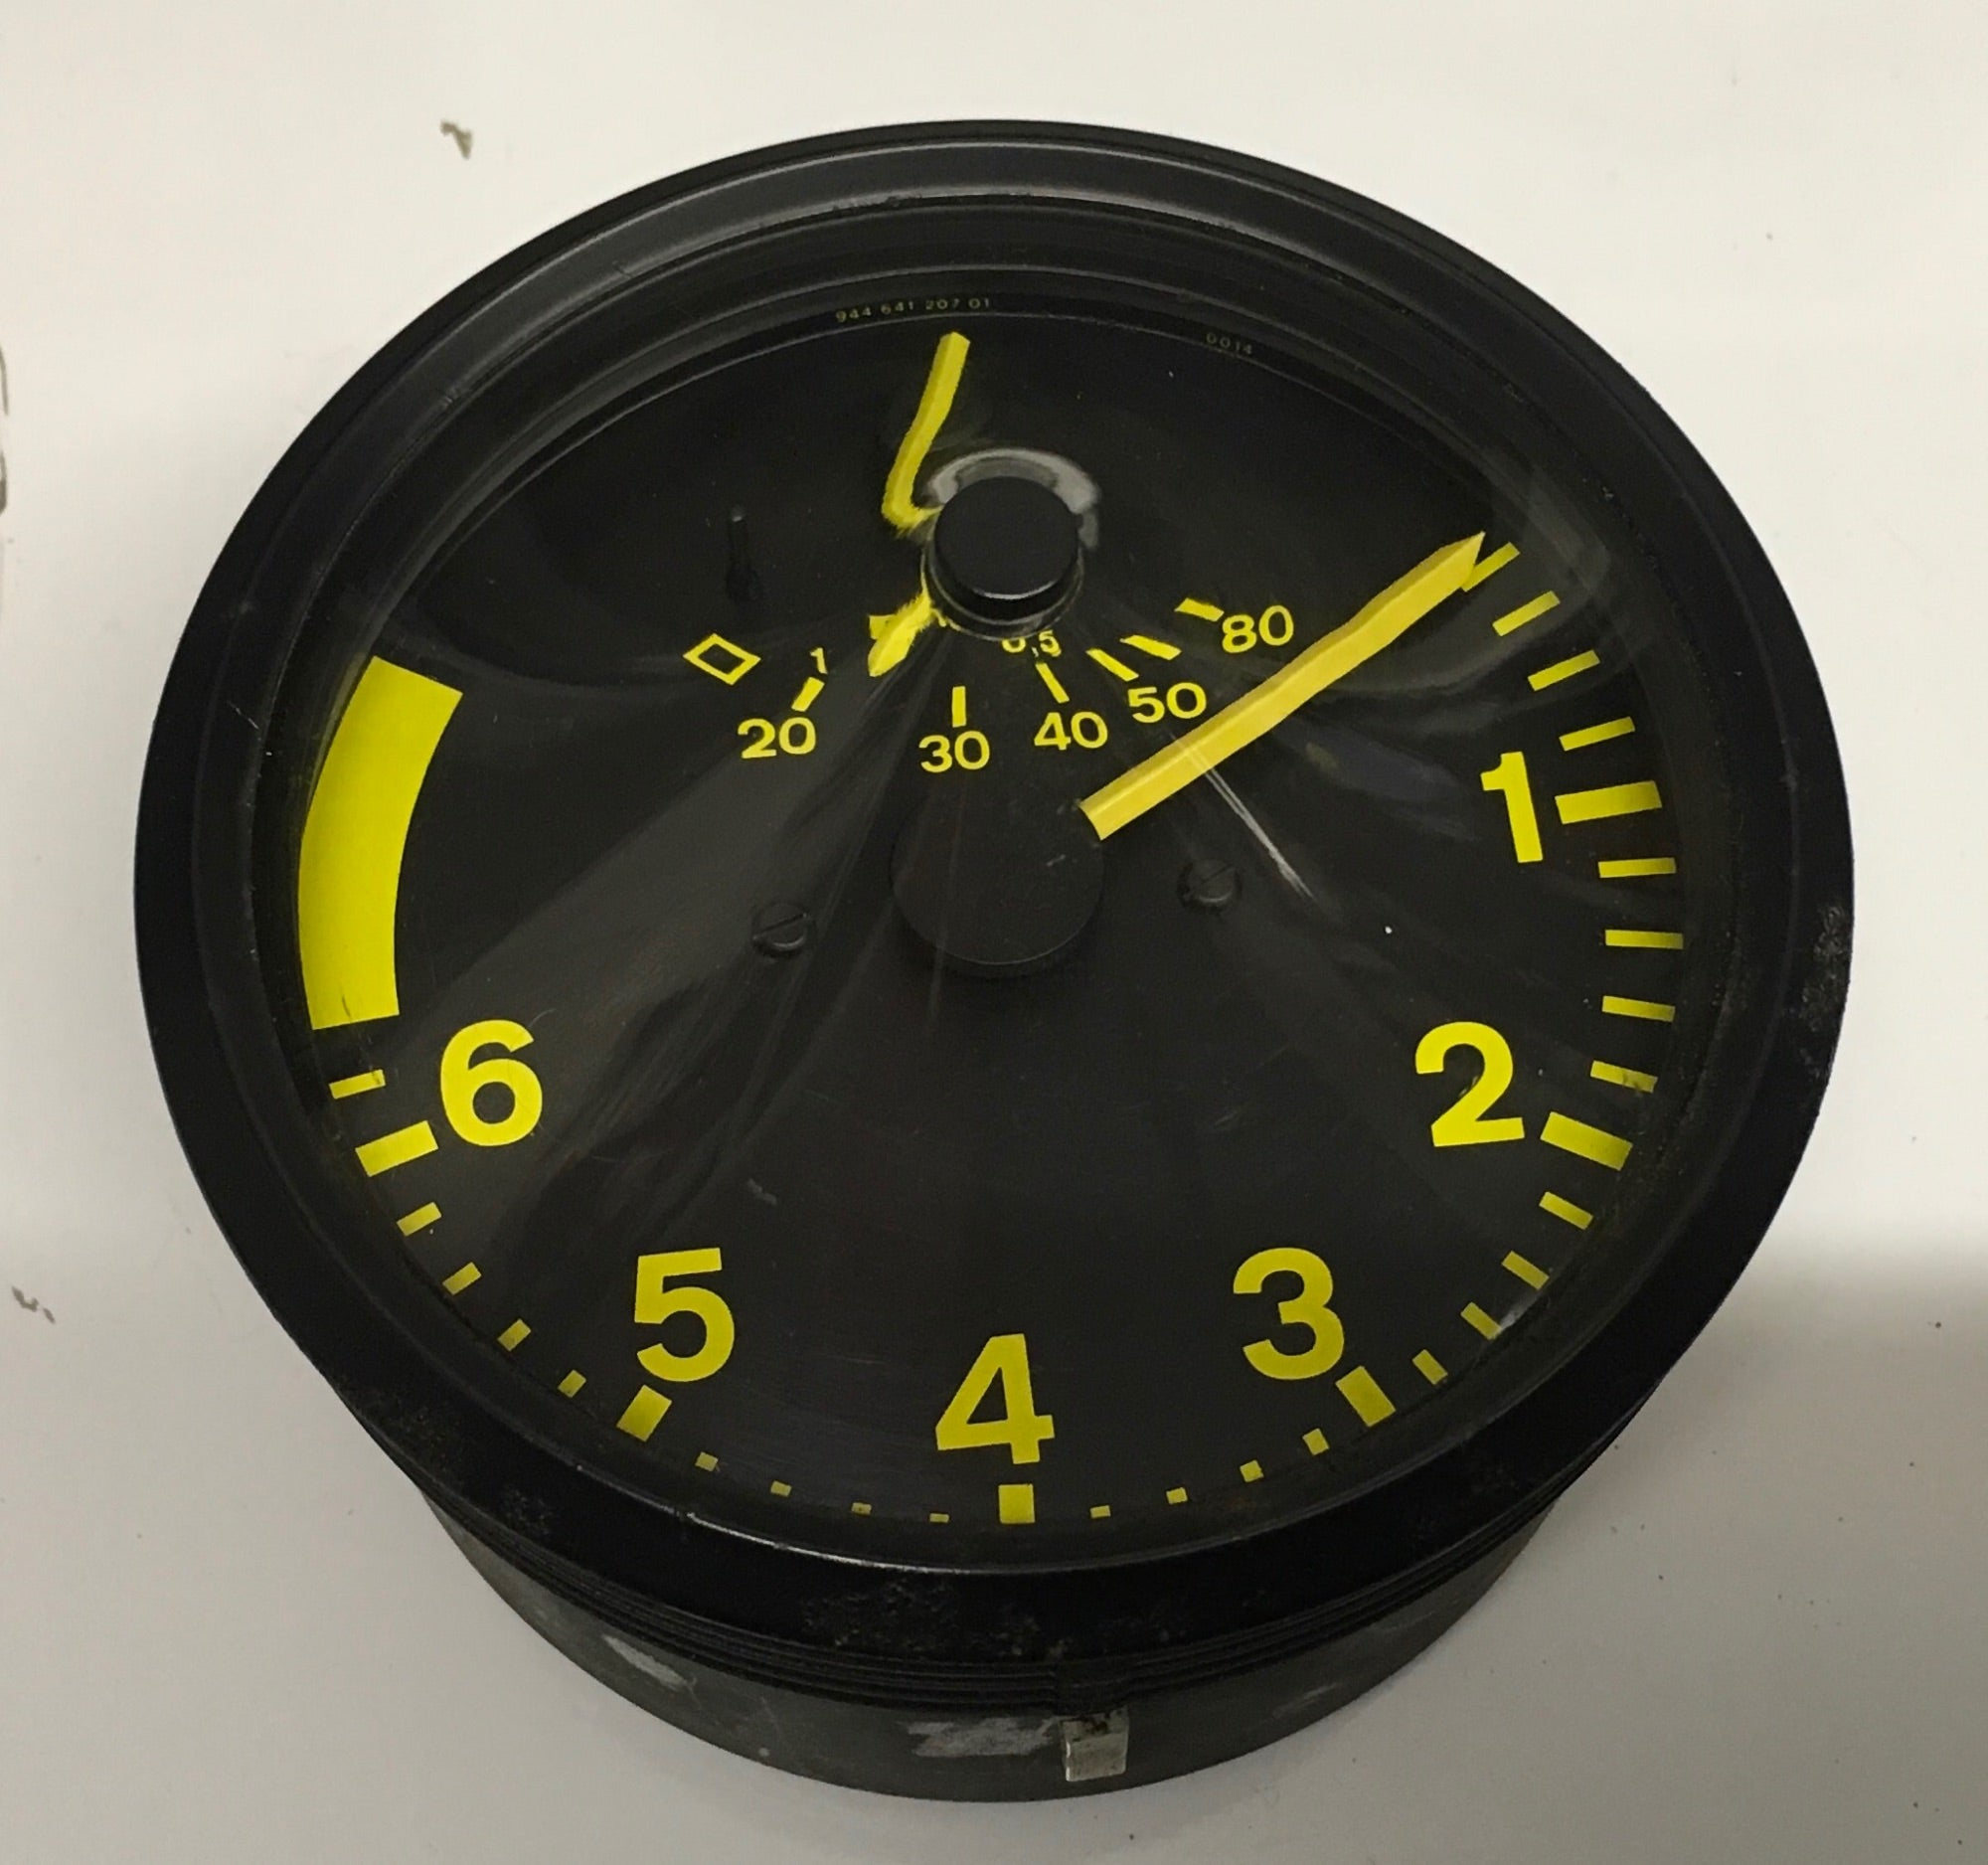 Porsche 944 early rev counter tacho yellow 944 641 207 01 with MPG. ((Ref green 4)) - Woolies Workshop - Porsche 924 944 spares